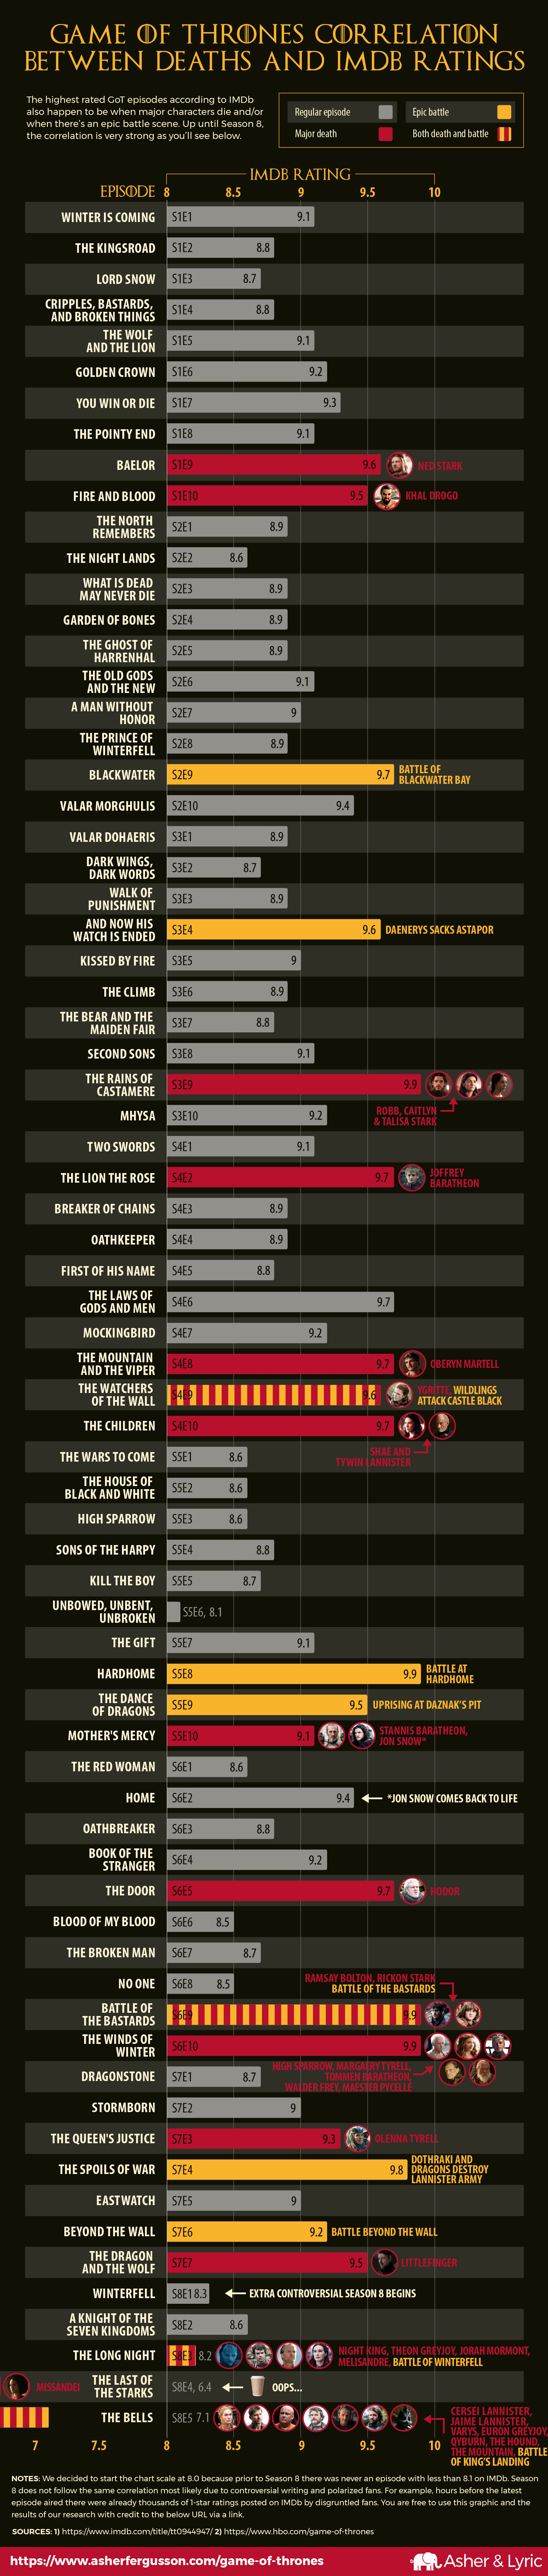 Game of Thrones correlation between deaths and IMDb ratings